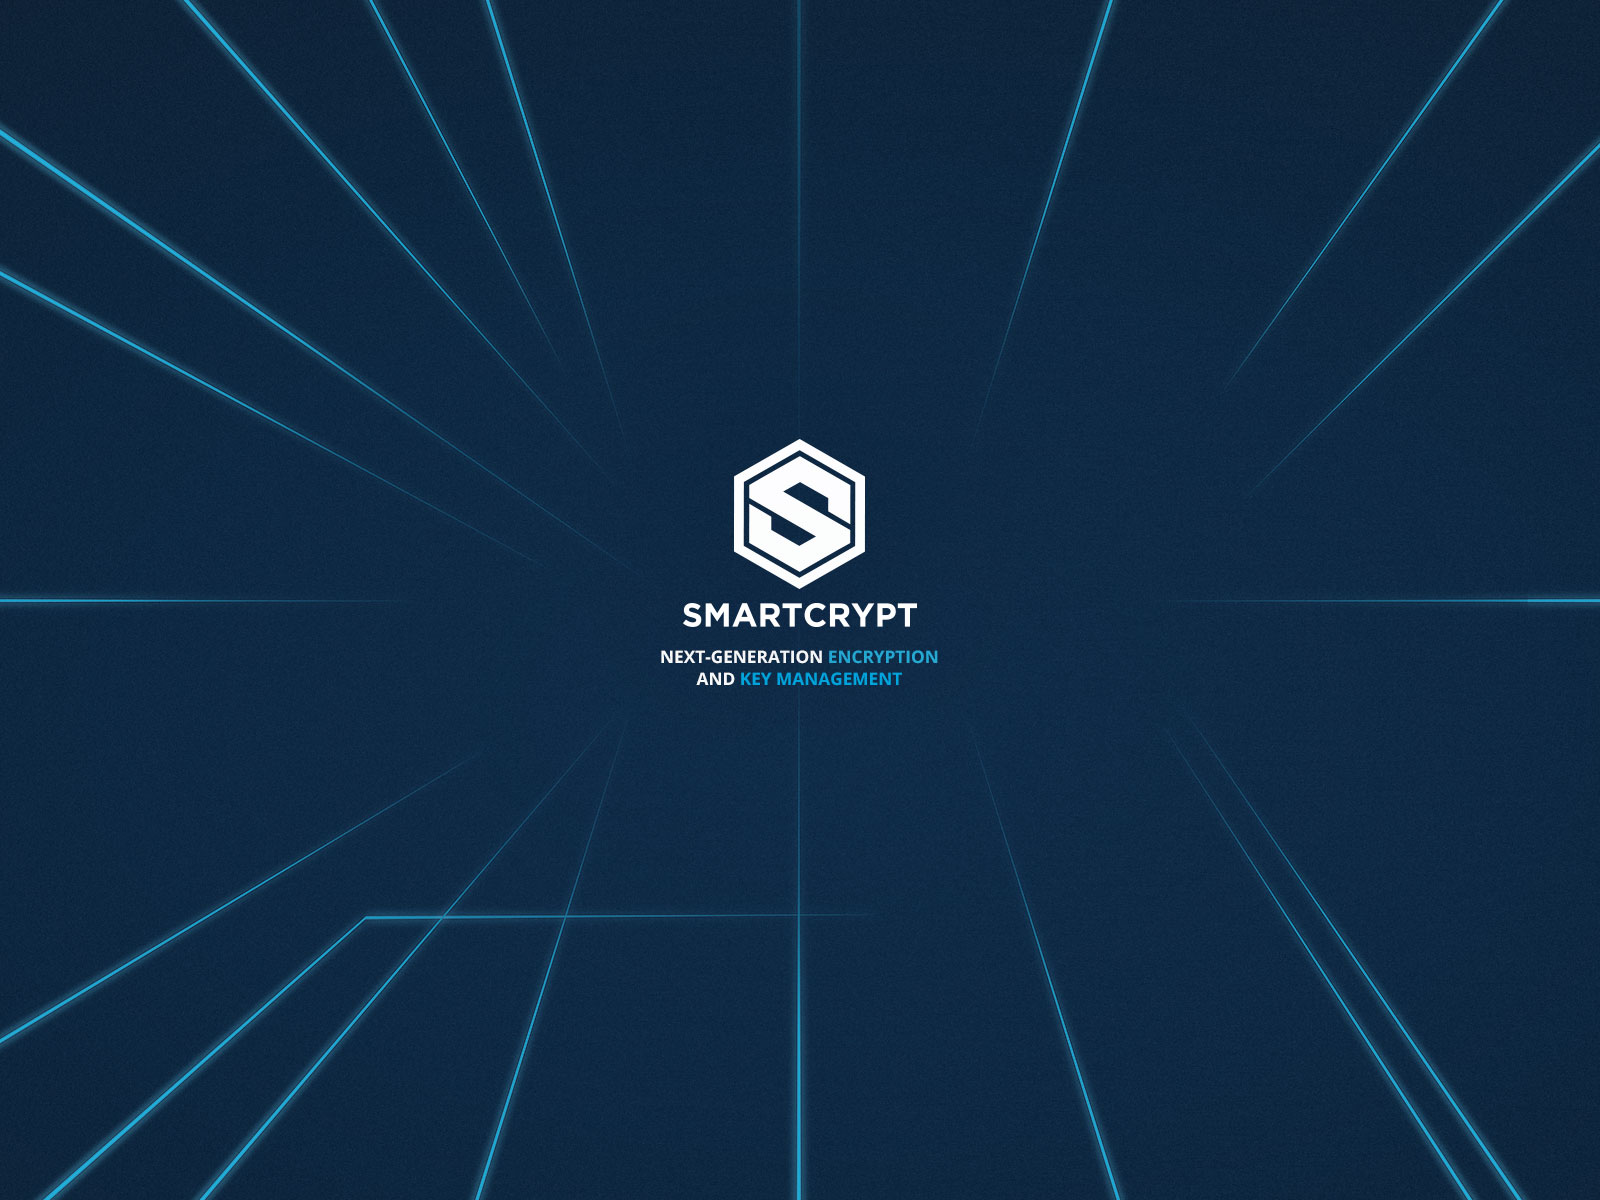 Smartcrypt background